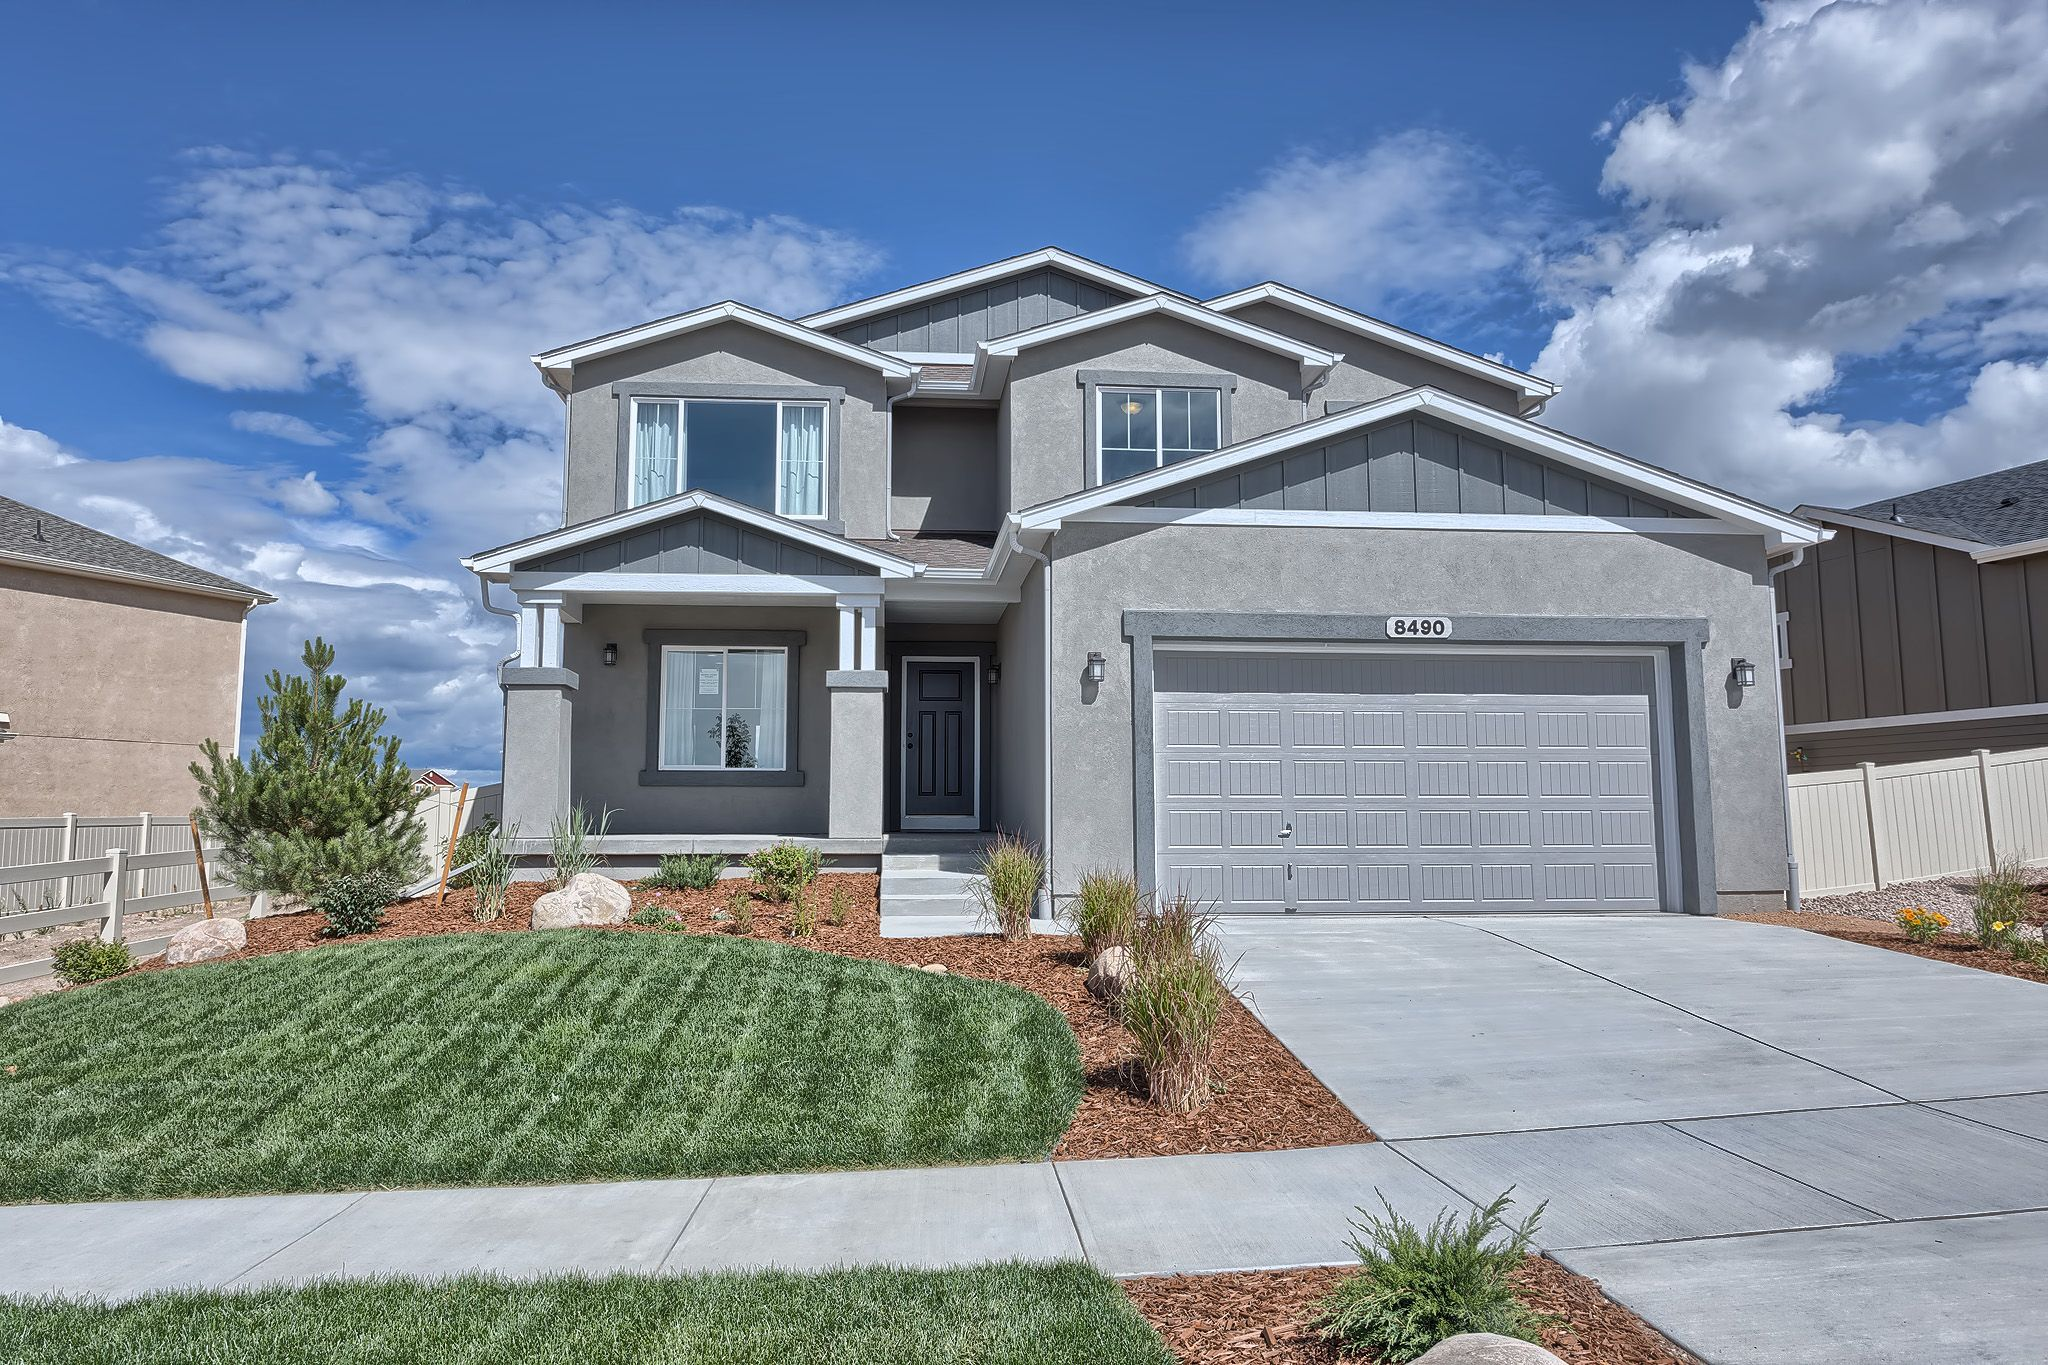 Willow creek new home community in colorado springs colorado for Modern homes colorado springs